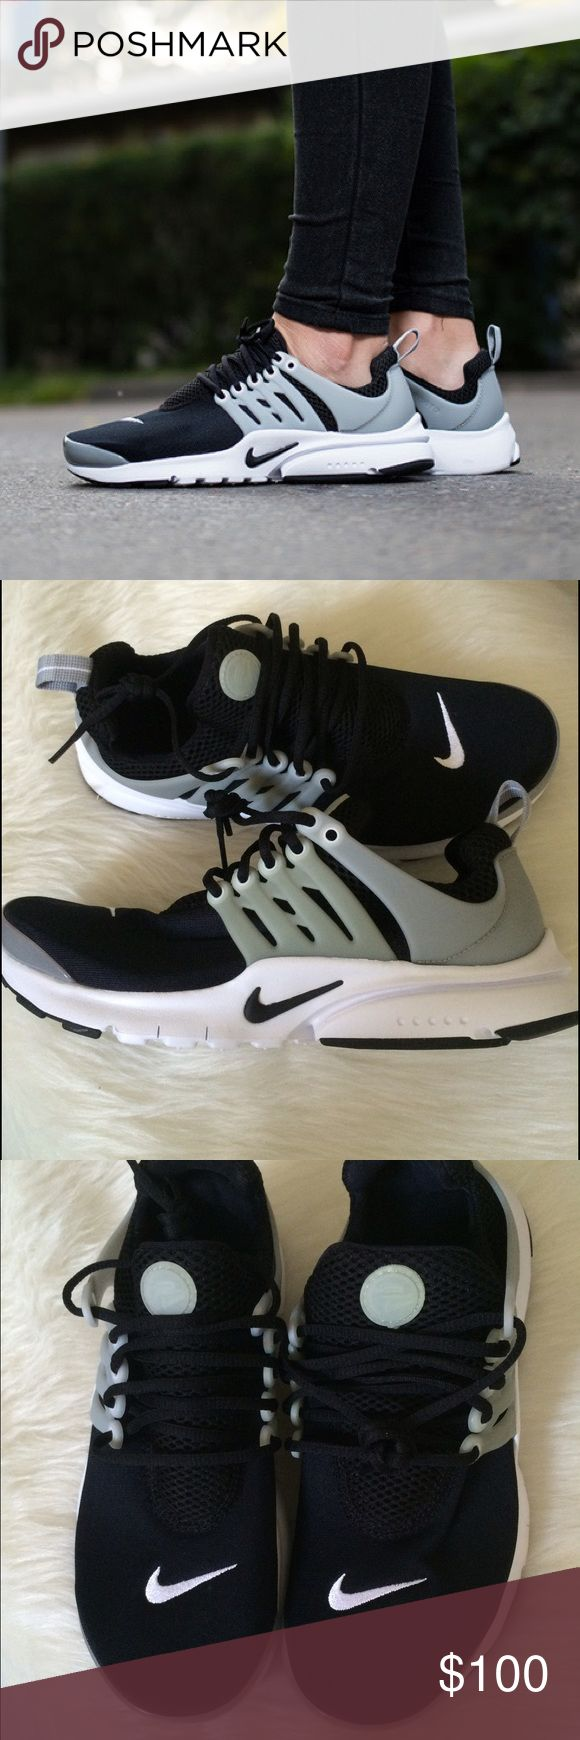 NIKE AIR PRESTO BLACK WHITE SHOES WOMENS NEW Shoes are brand new. No box. Shoes are a size 6 youth which is a women's size 7.5. I have added a sizing chart. Nike Shoes Sneakers